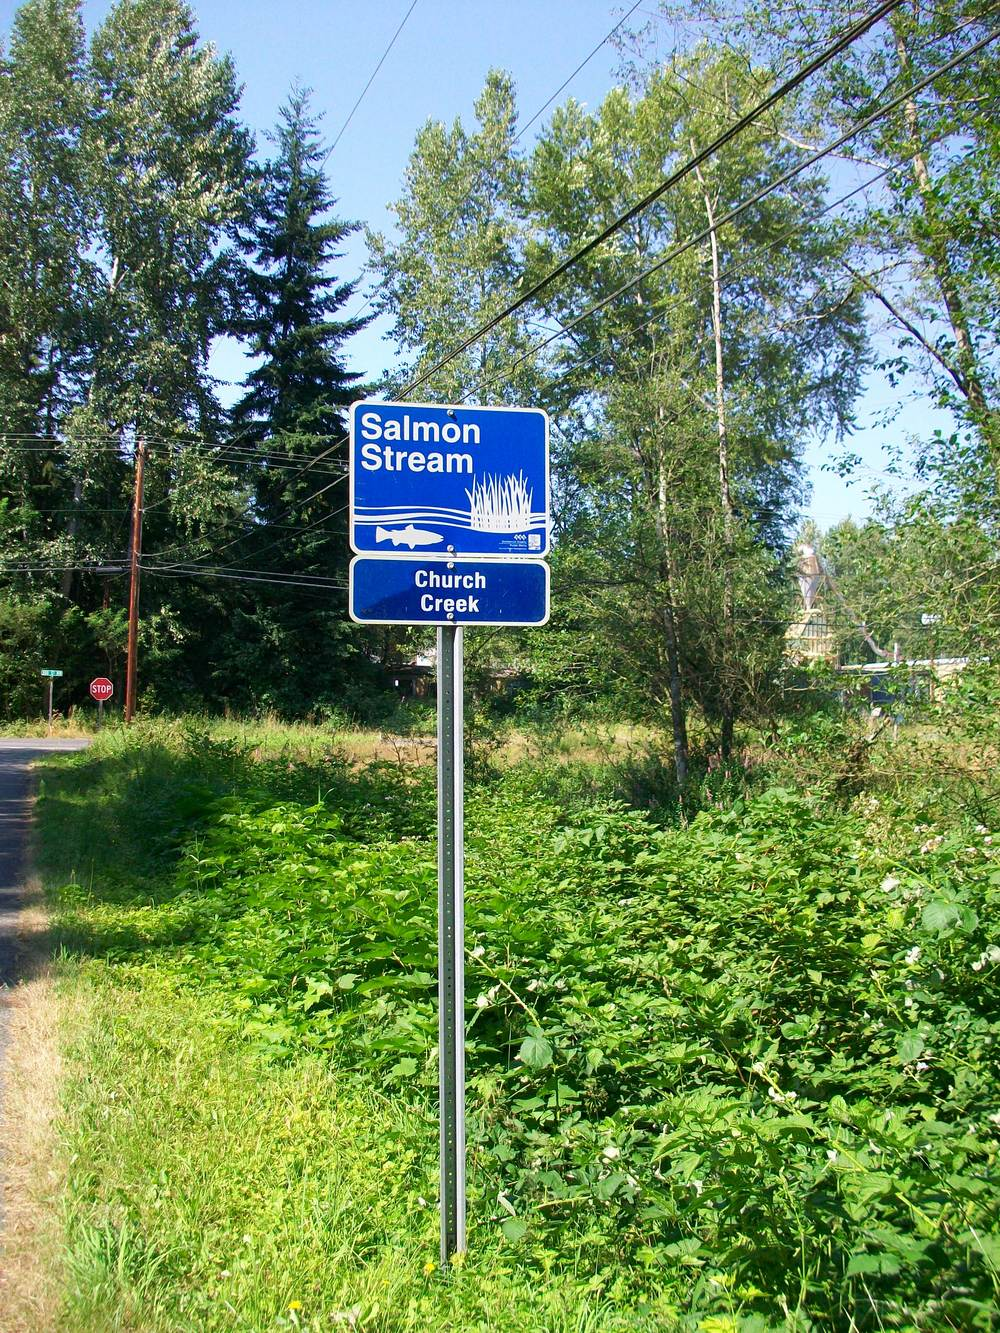 Salmon Stream sign signifying church creek as the salmon stream